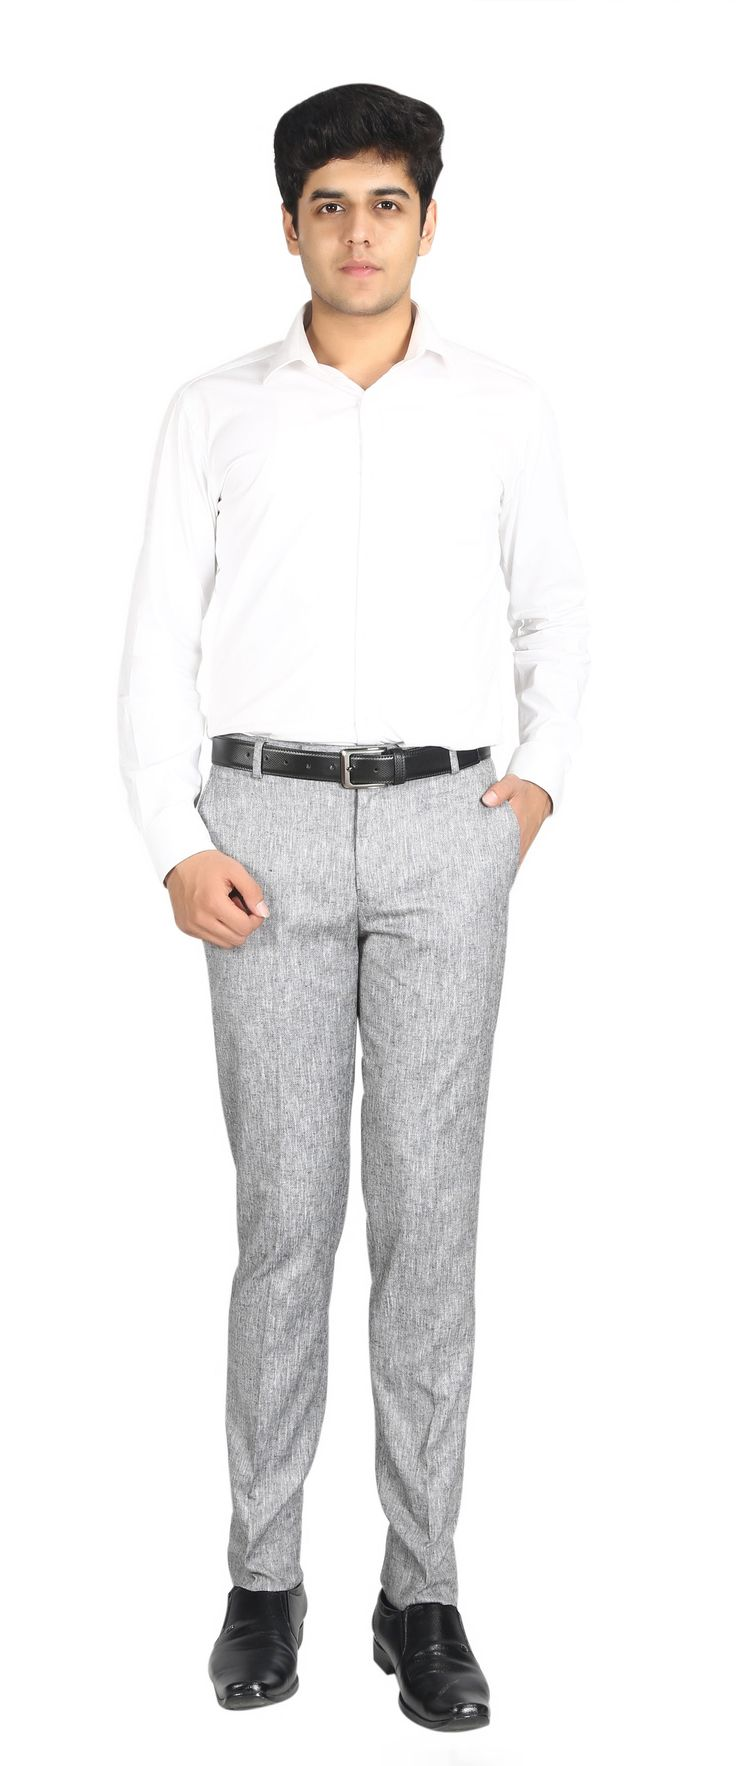 Brand Name= NUMERICS  Size= 30-38 Shade= Grey Fit        = Slim Fit Fabric= POLYSTER VISCOSE Price= 1410/- Discount= 40% Now Price= 846/-